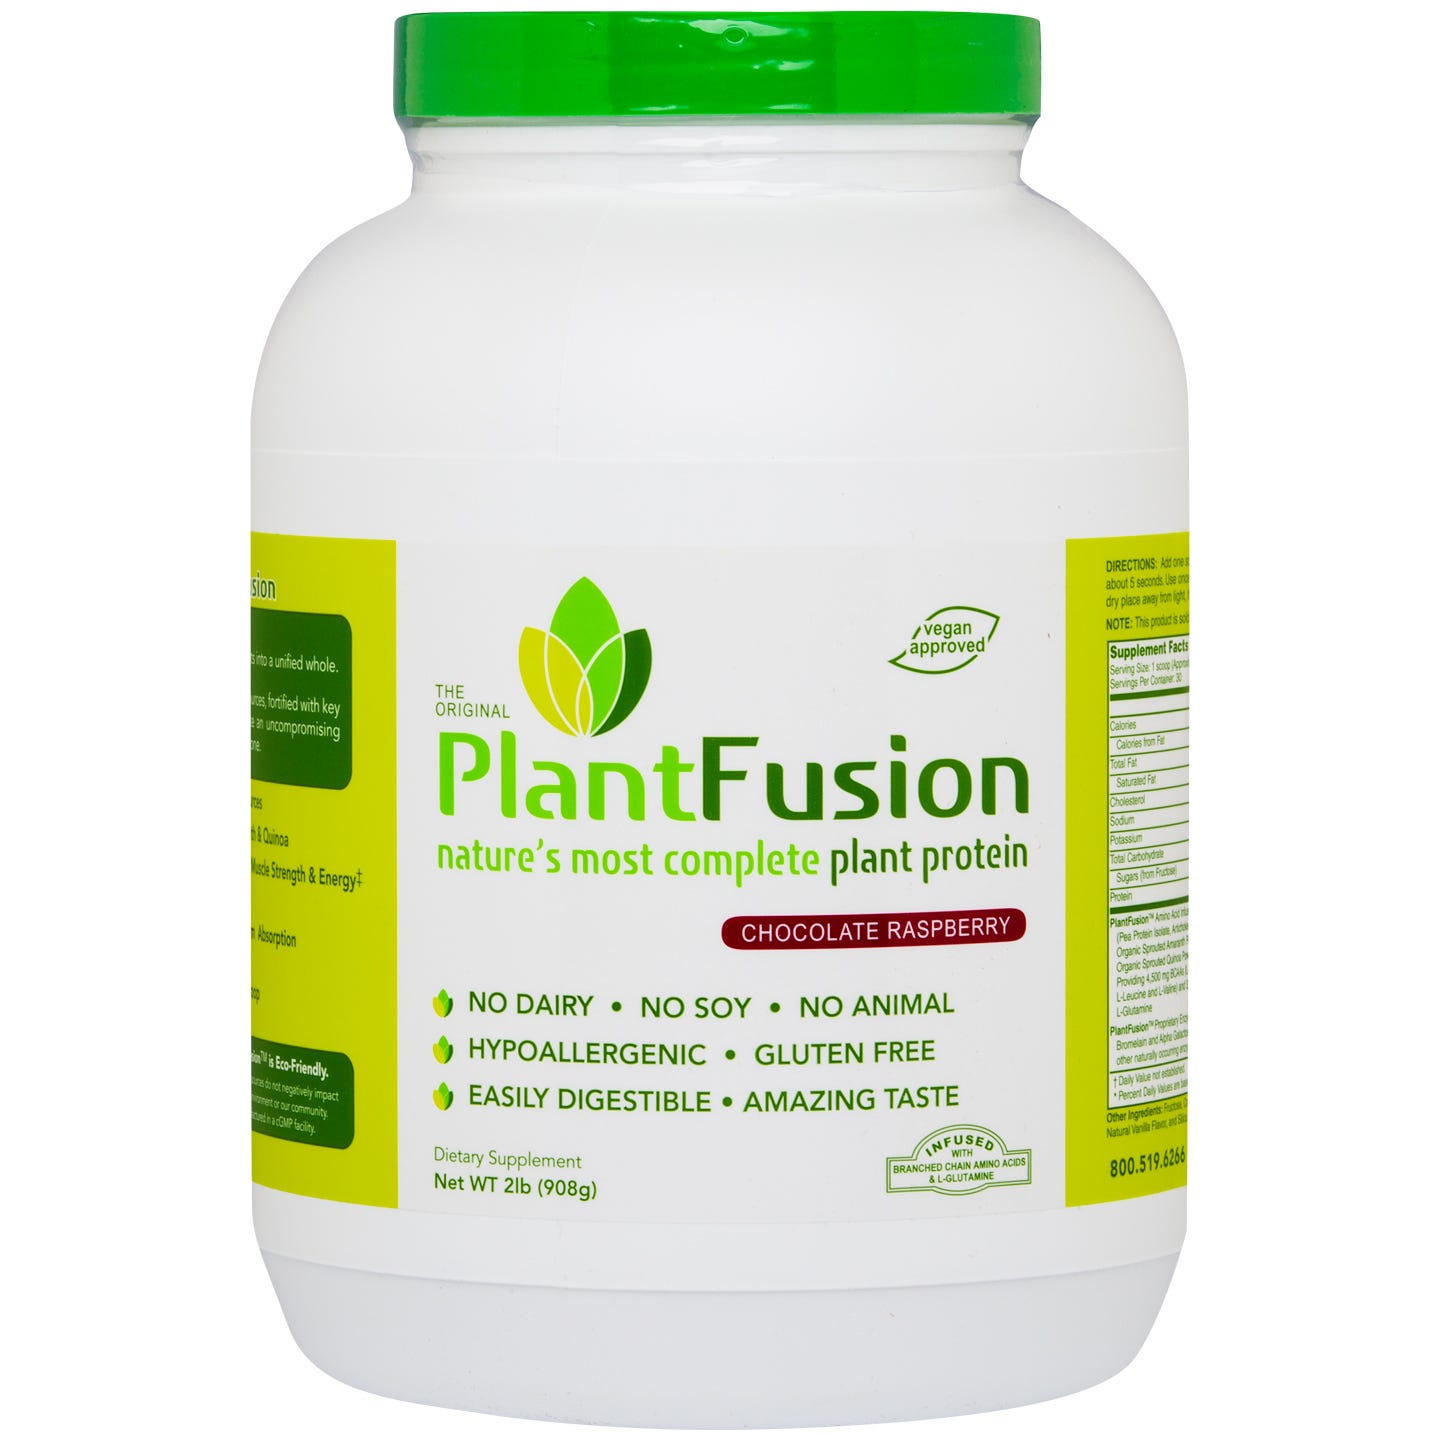 Plant Protein Powder Chocolate Raspberry 2 lb, PlantFusion - Rapid Diet Weight Loss Products Shop